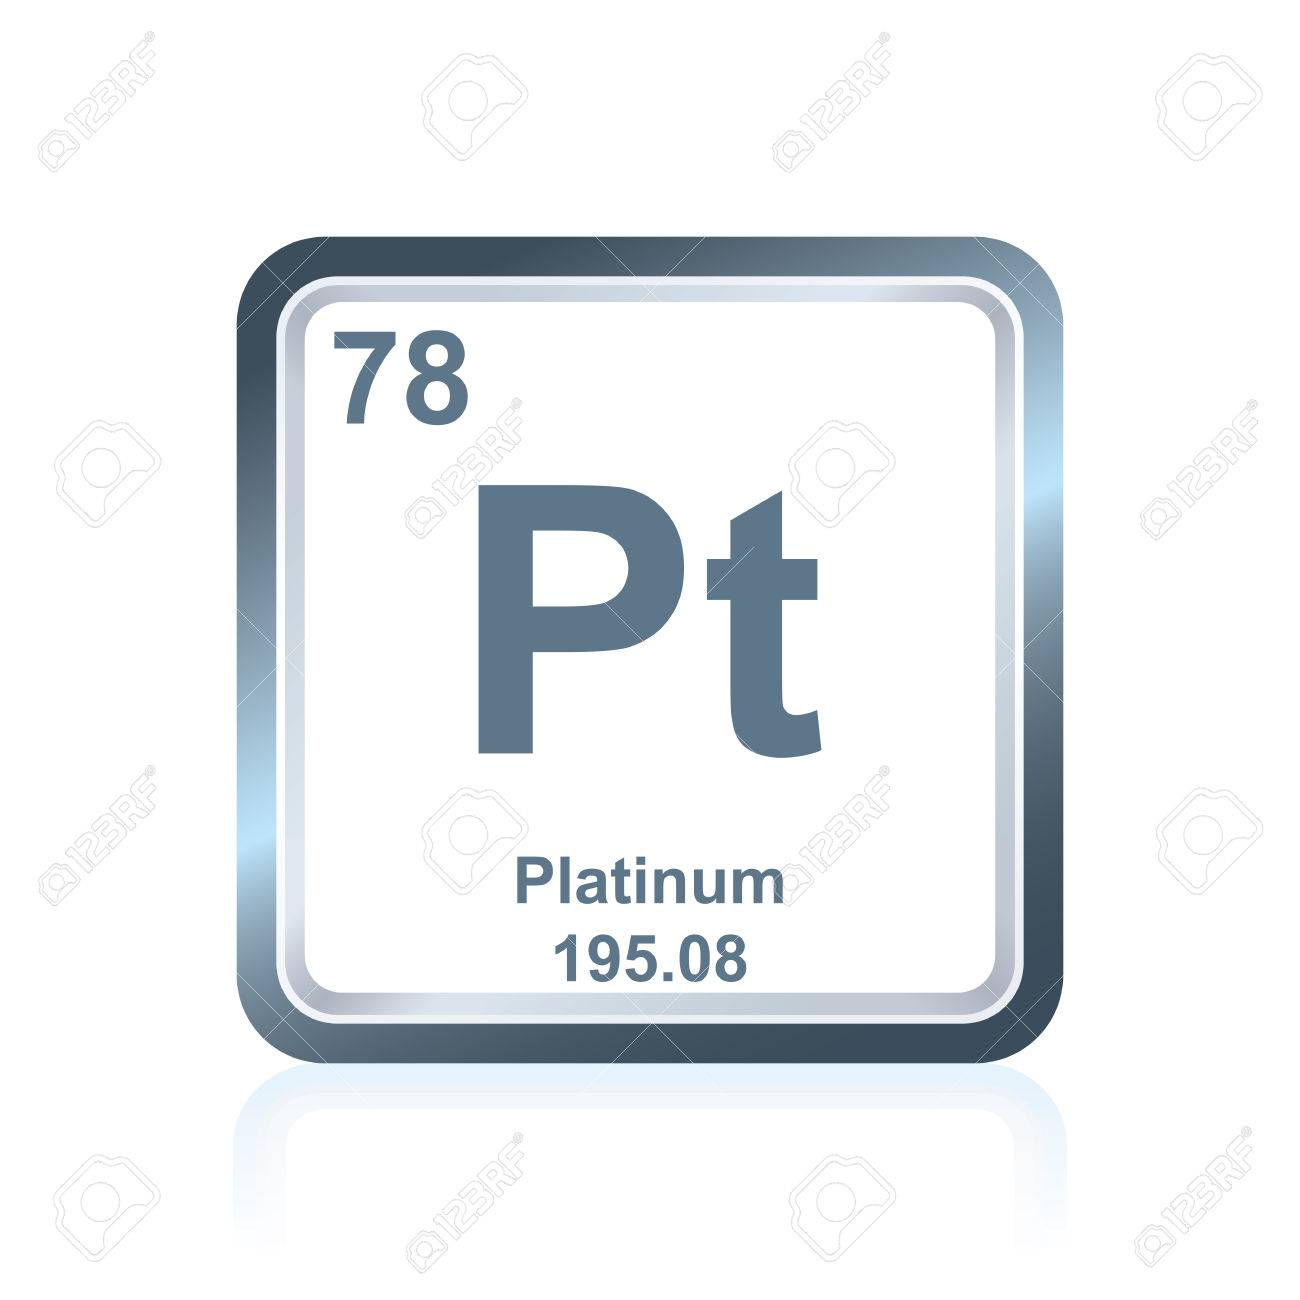 Symbol Of Chemical Element Platinum As Seen On The Periodic Table